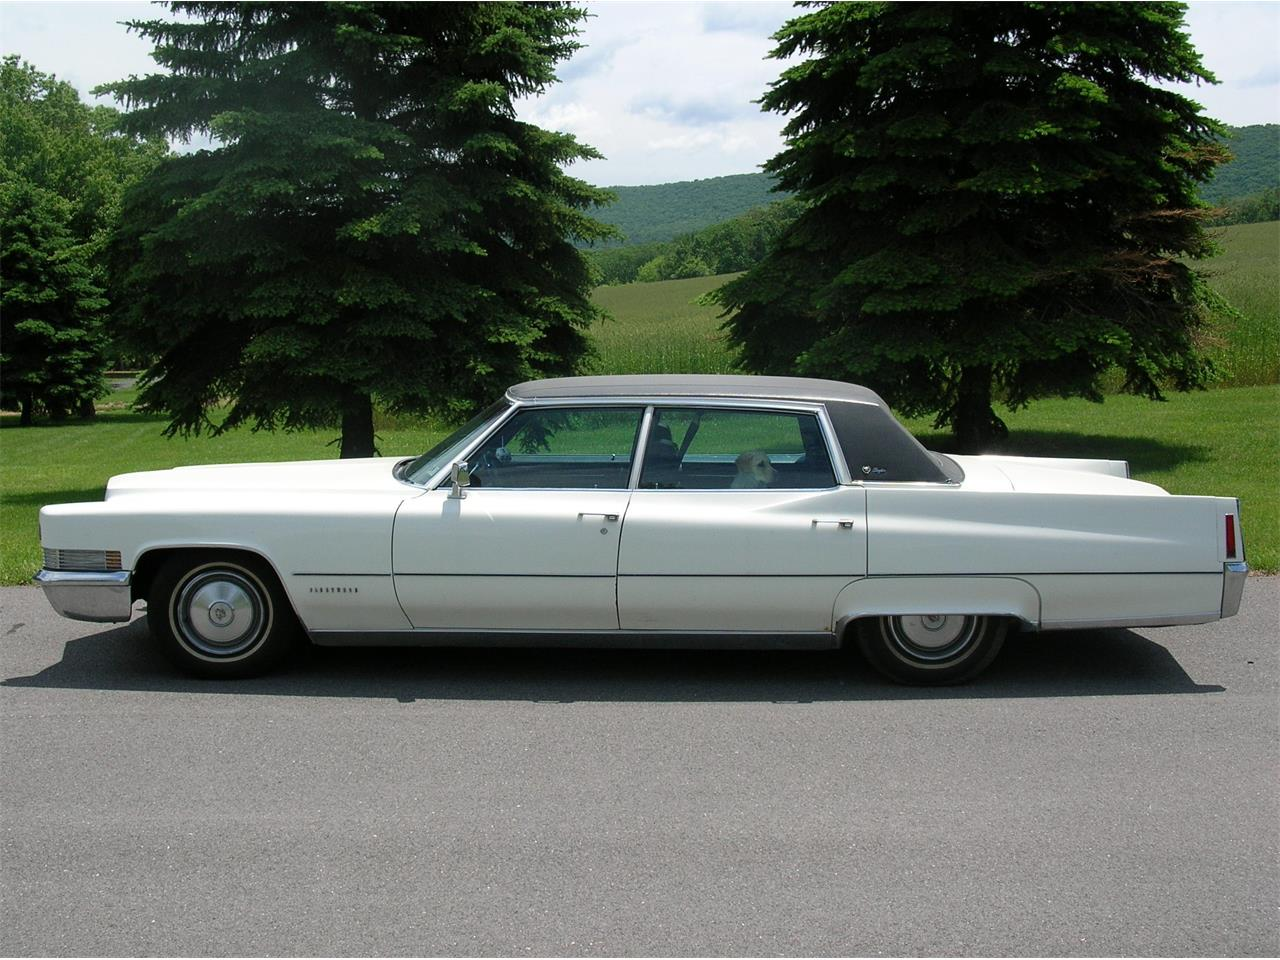 1970 Cadillac Fleetwood for sale in Shamokin, PA – photo 4